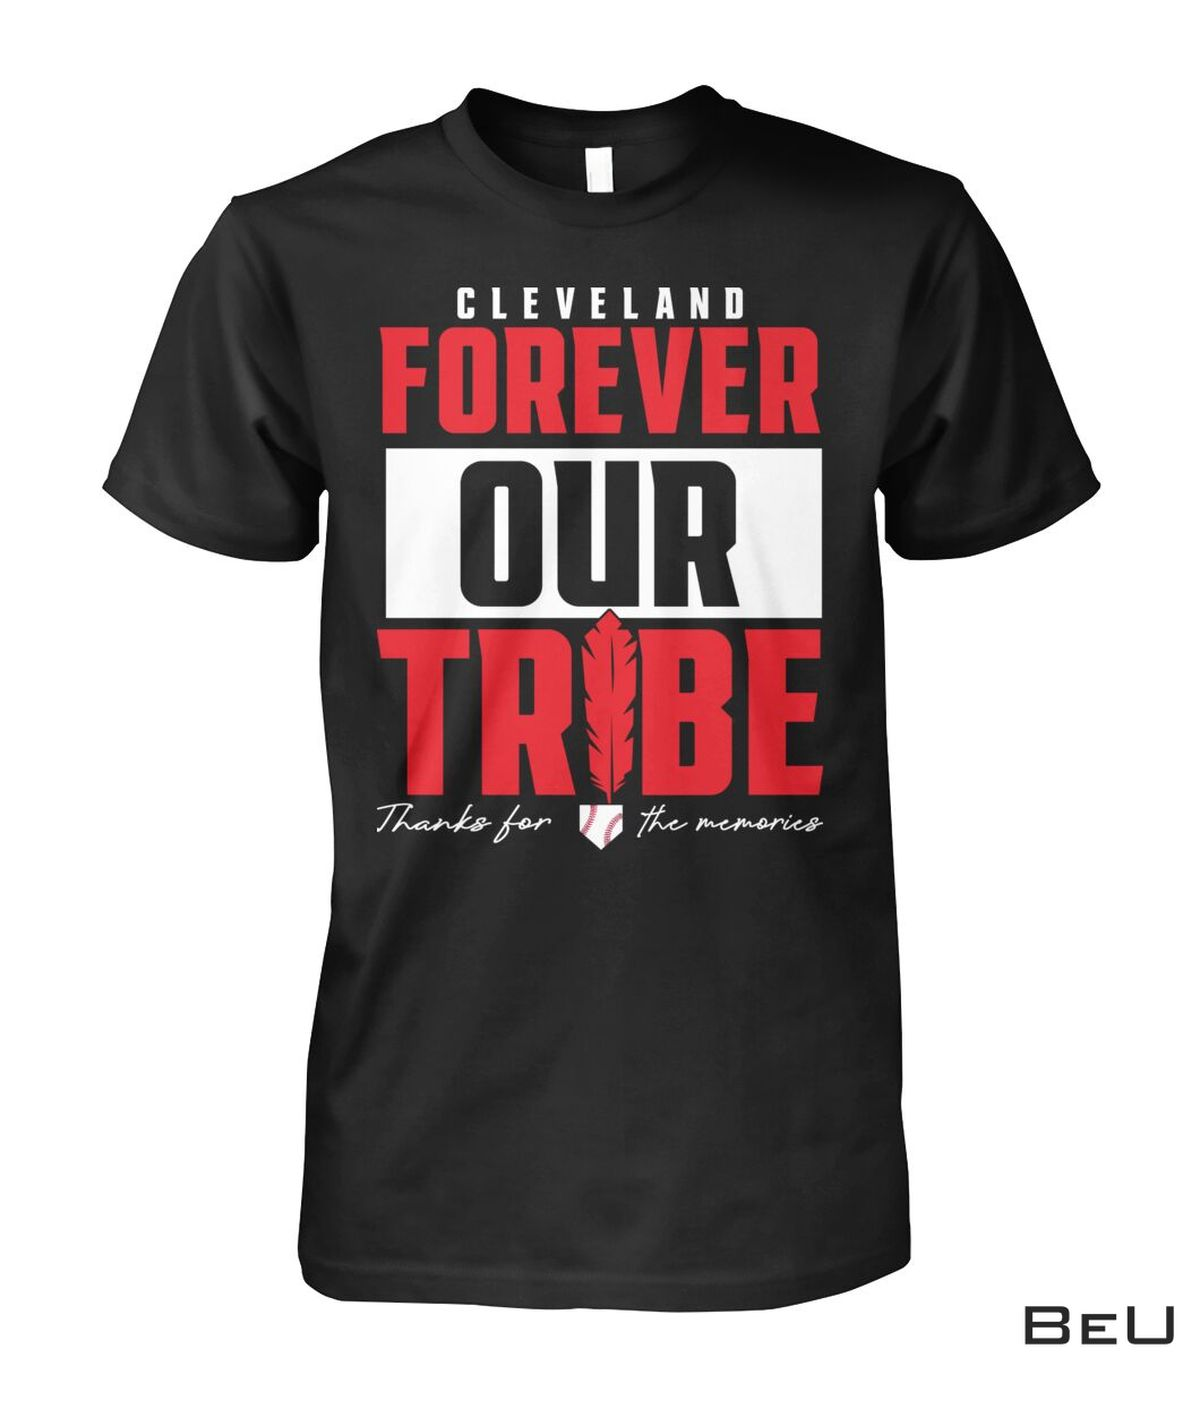 US Shop Cleveland Forever Our Tribe Shirt, hoodie